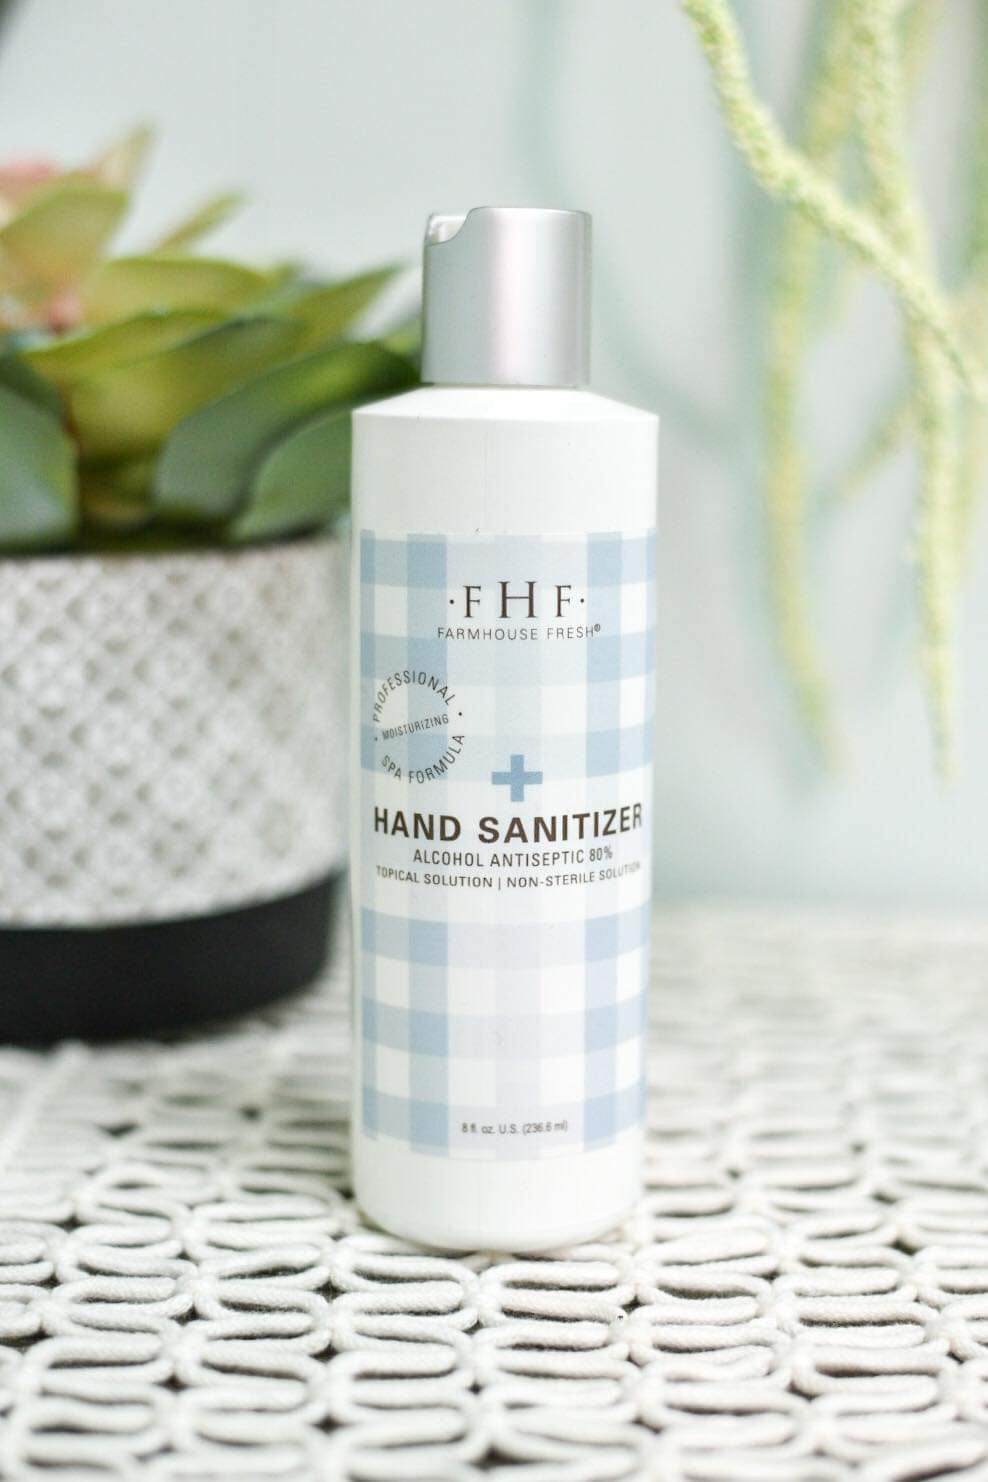 Hand Sanitizer by FHF